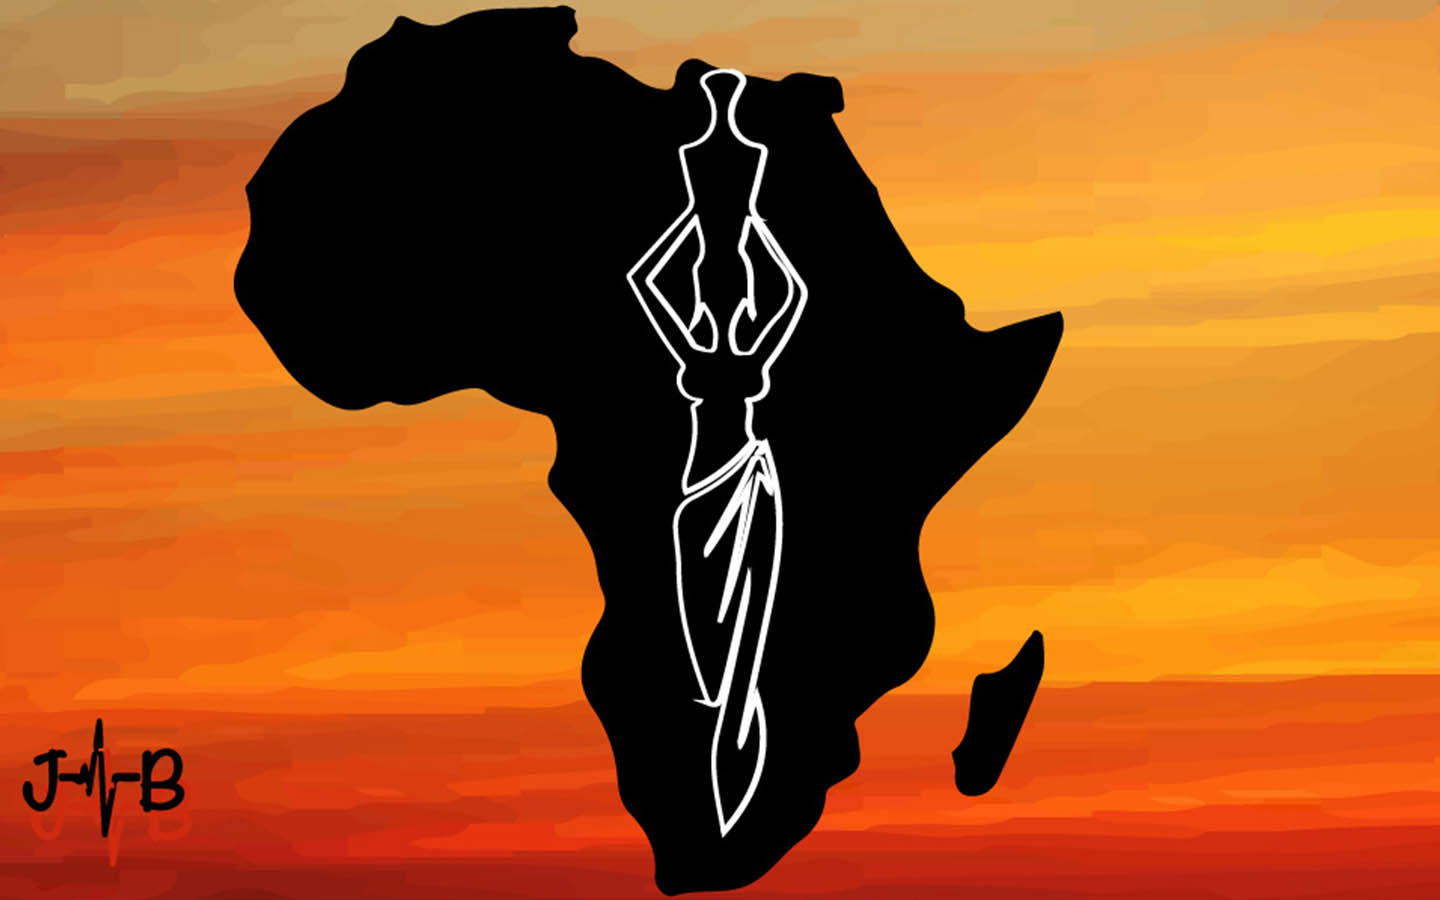 Mama Africa - She caries her load with pride.